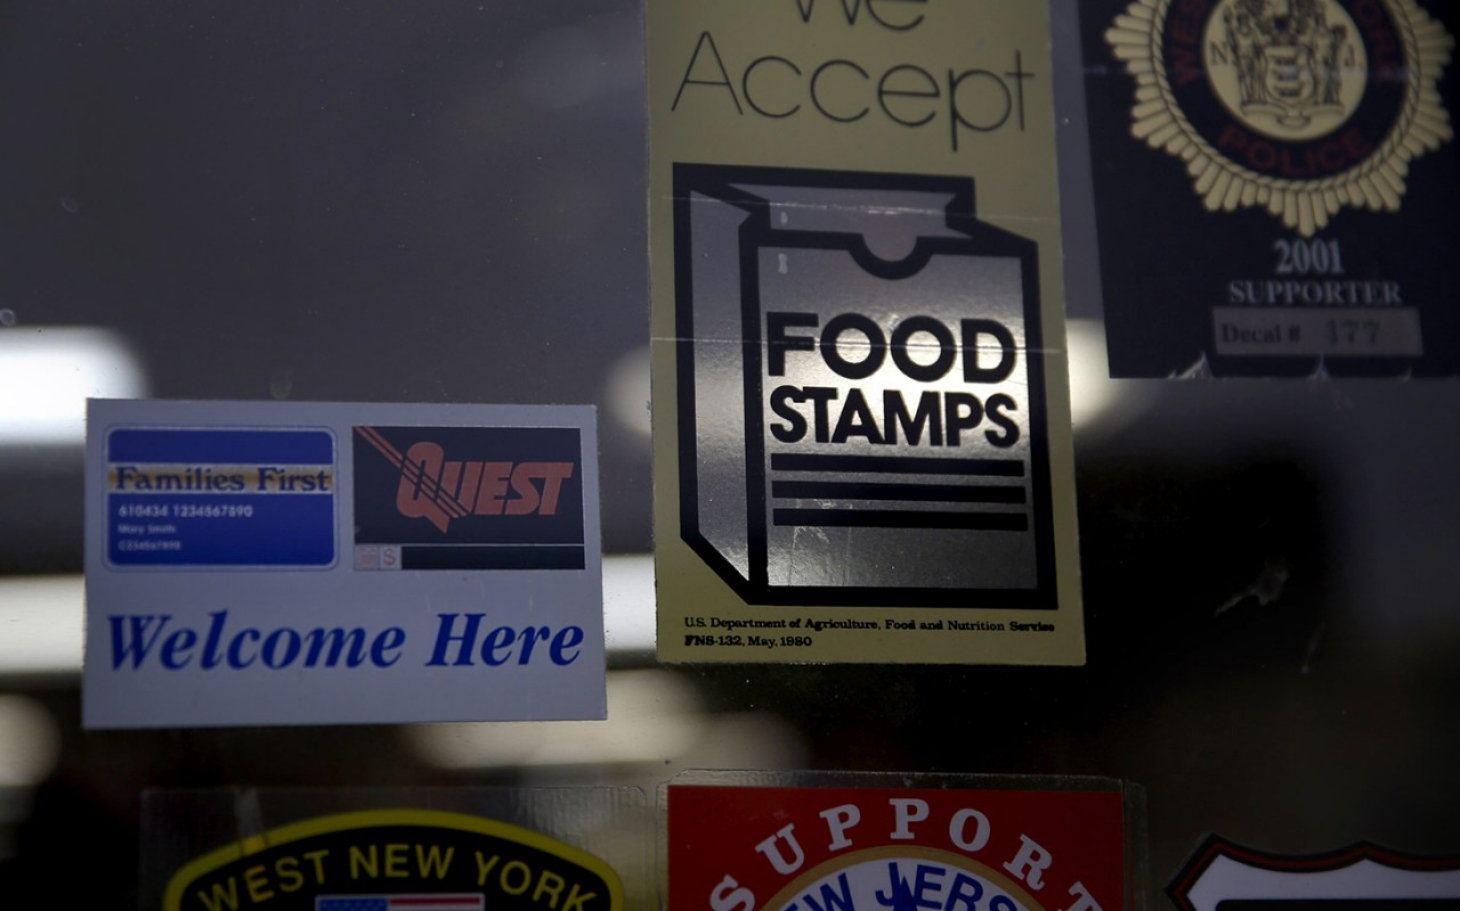 Who Has To Accept Food Stamps